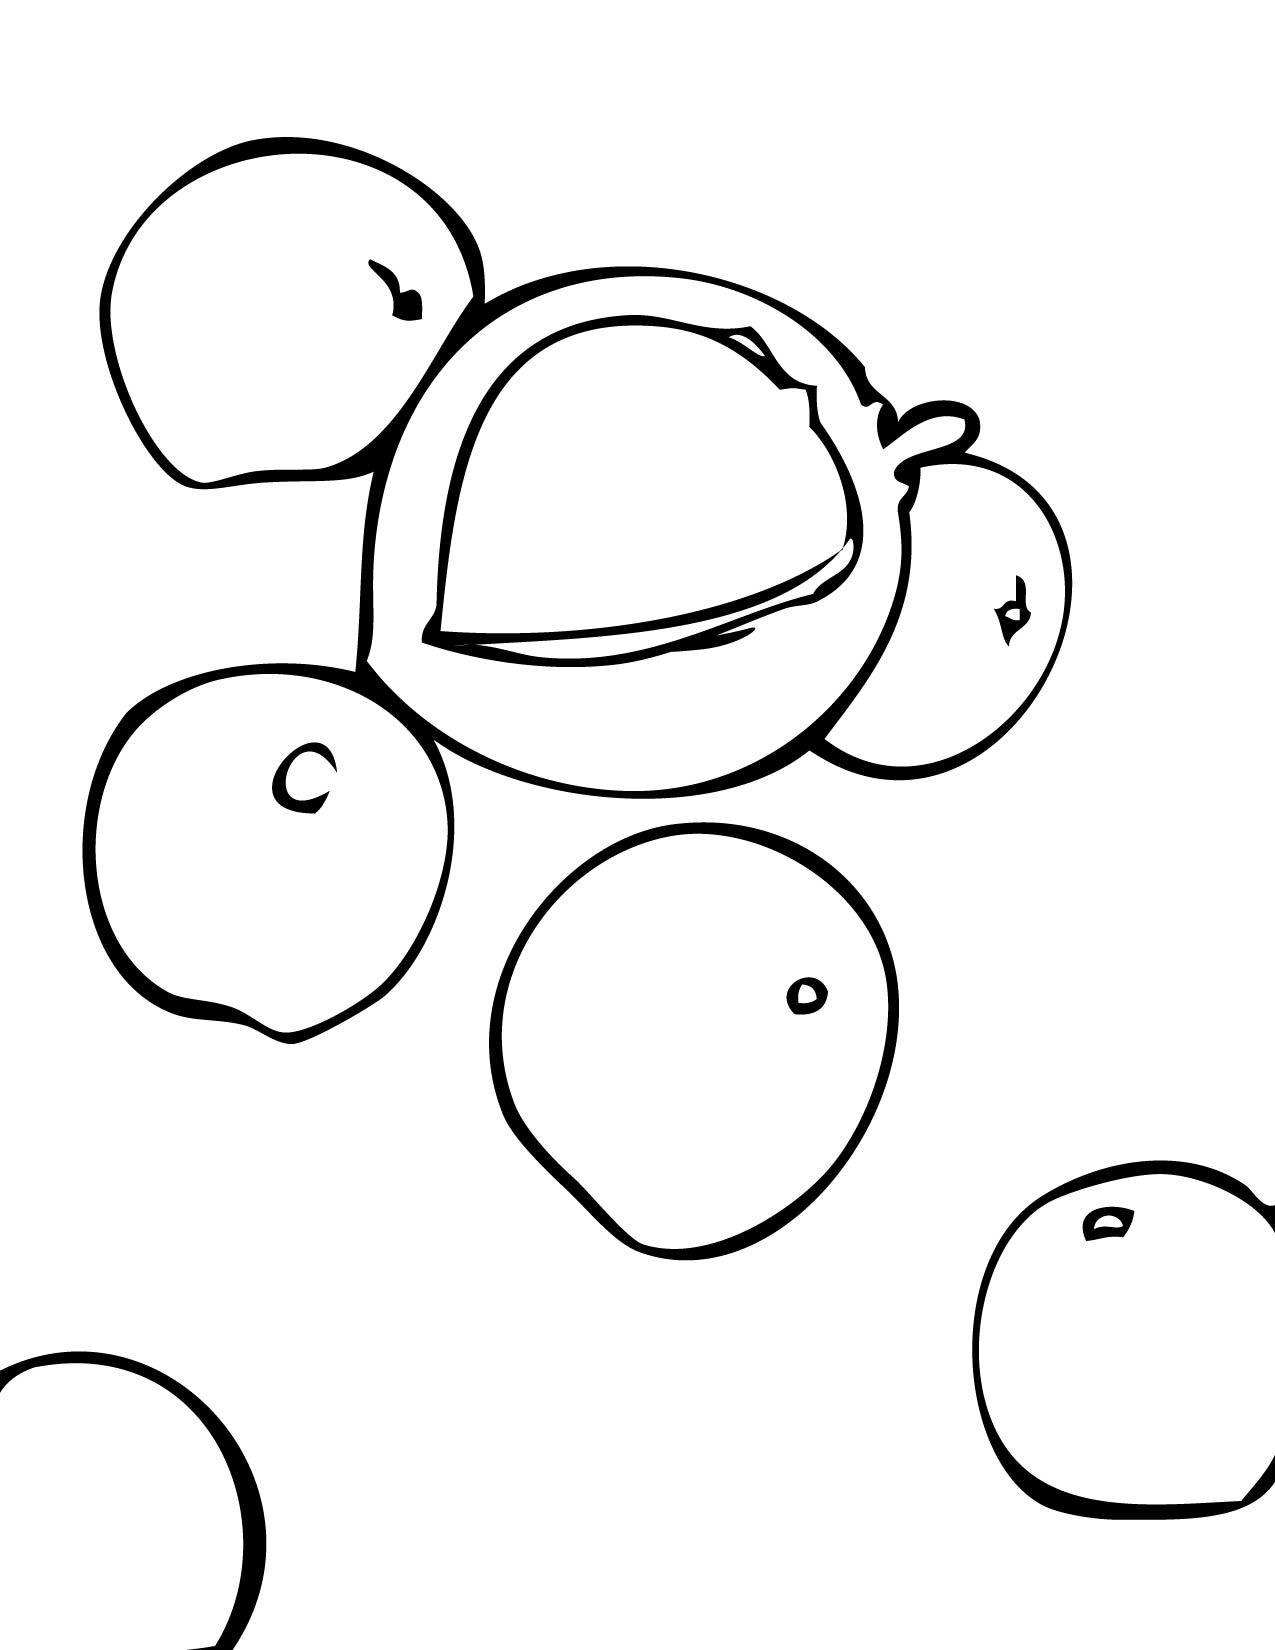 Nut coloring #16, Download drawings